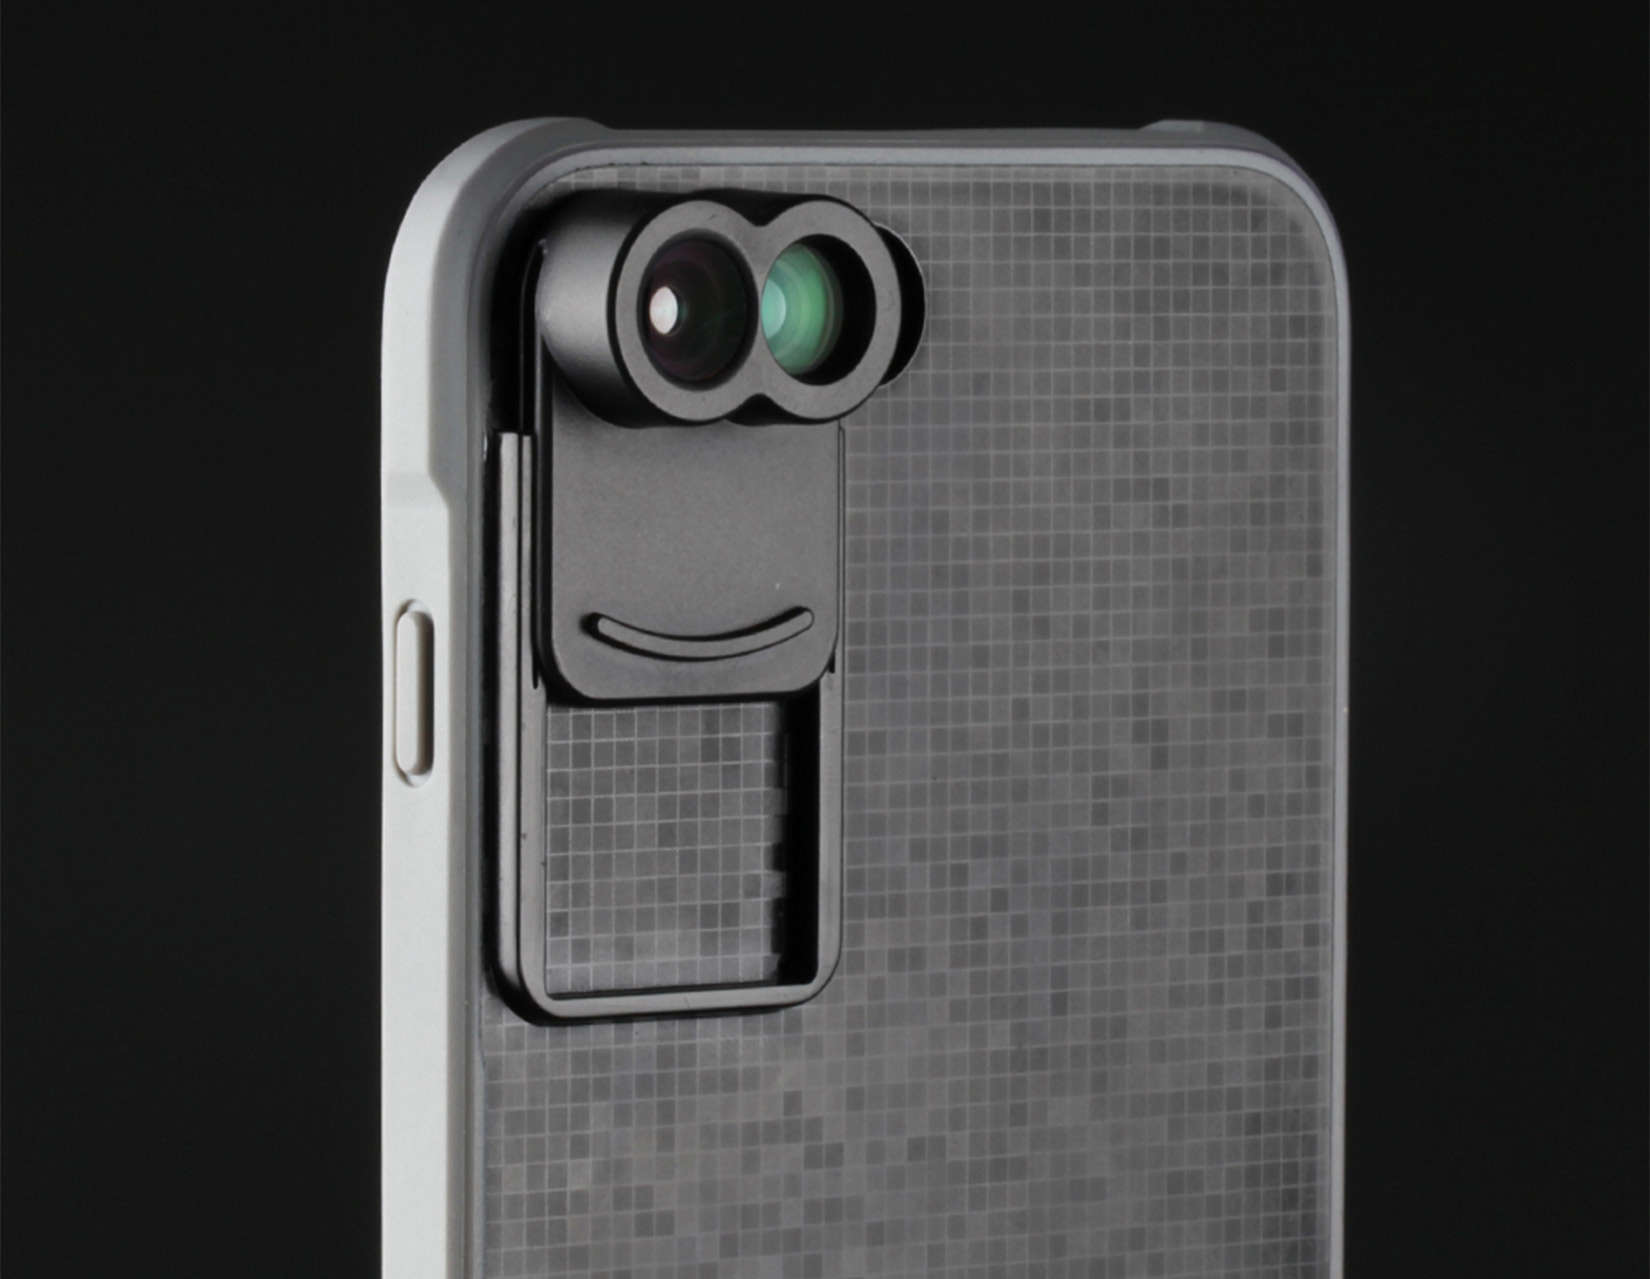 Hey four eyes! The Kamerar ZOOM lens attachment expands the telephoto/zoom capabilities of the dual-lens iPhone 7 Plus.